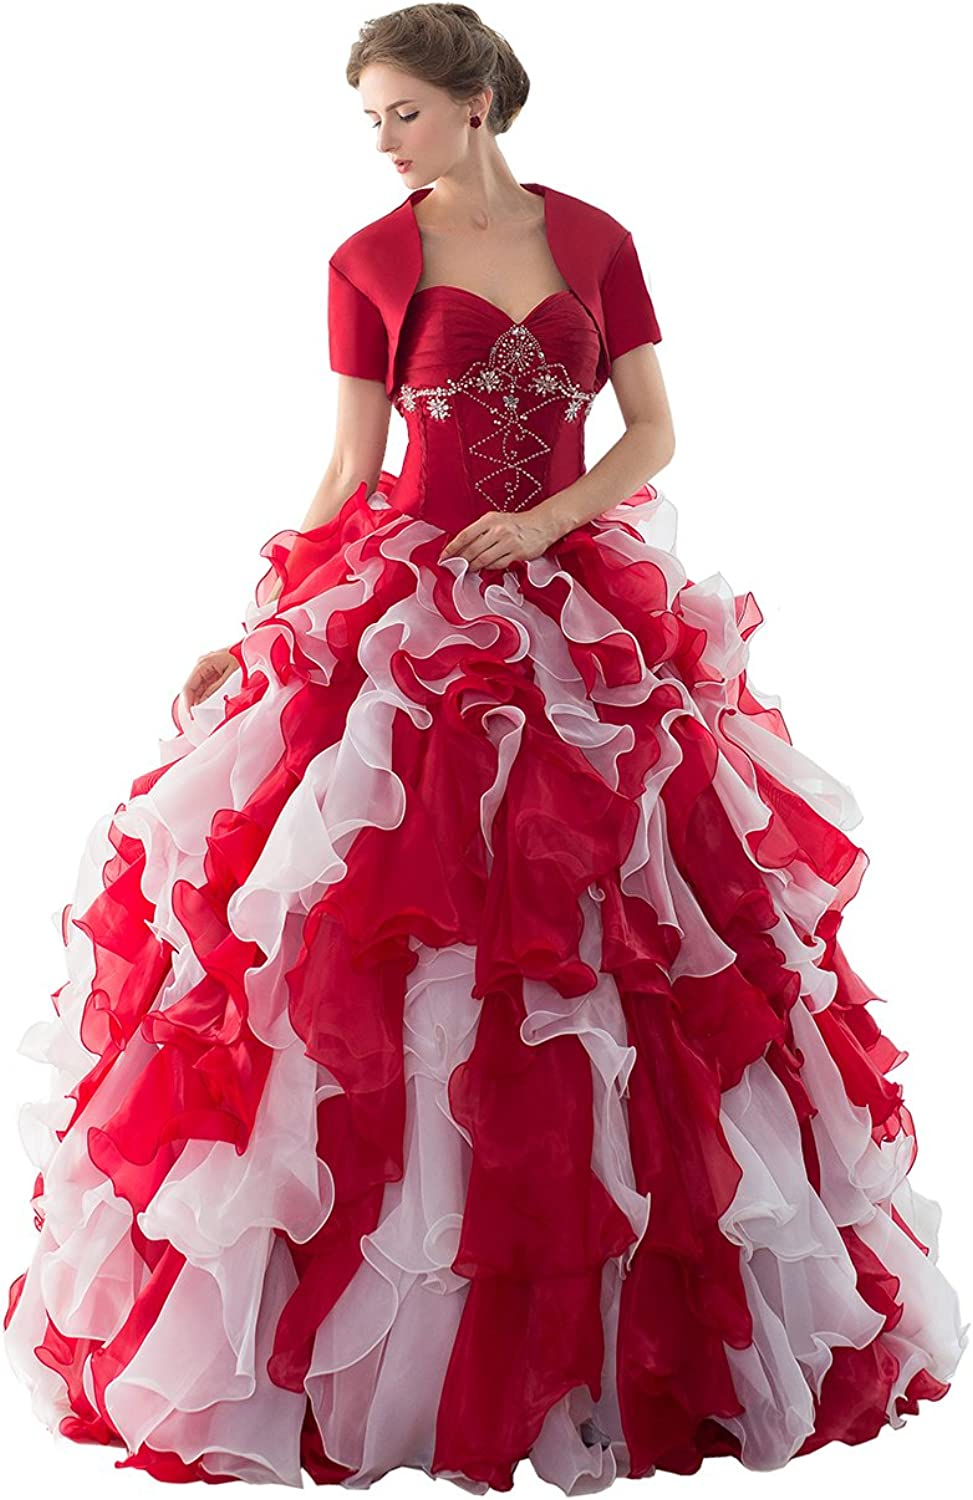 Engerla Sweetheart Strapless Organza Homecoming Dress with Jacket for Woman